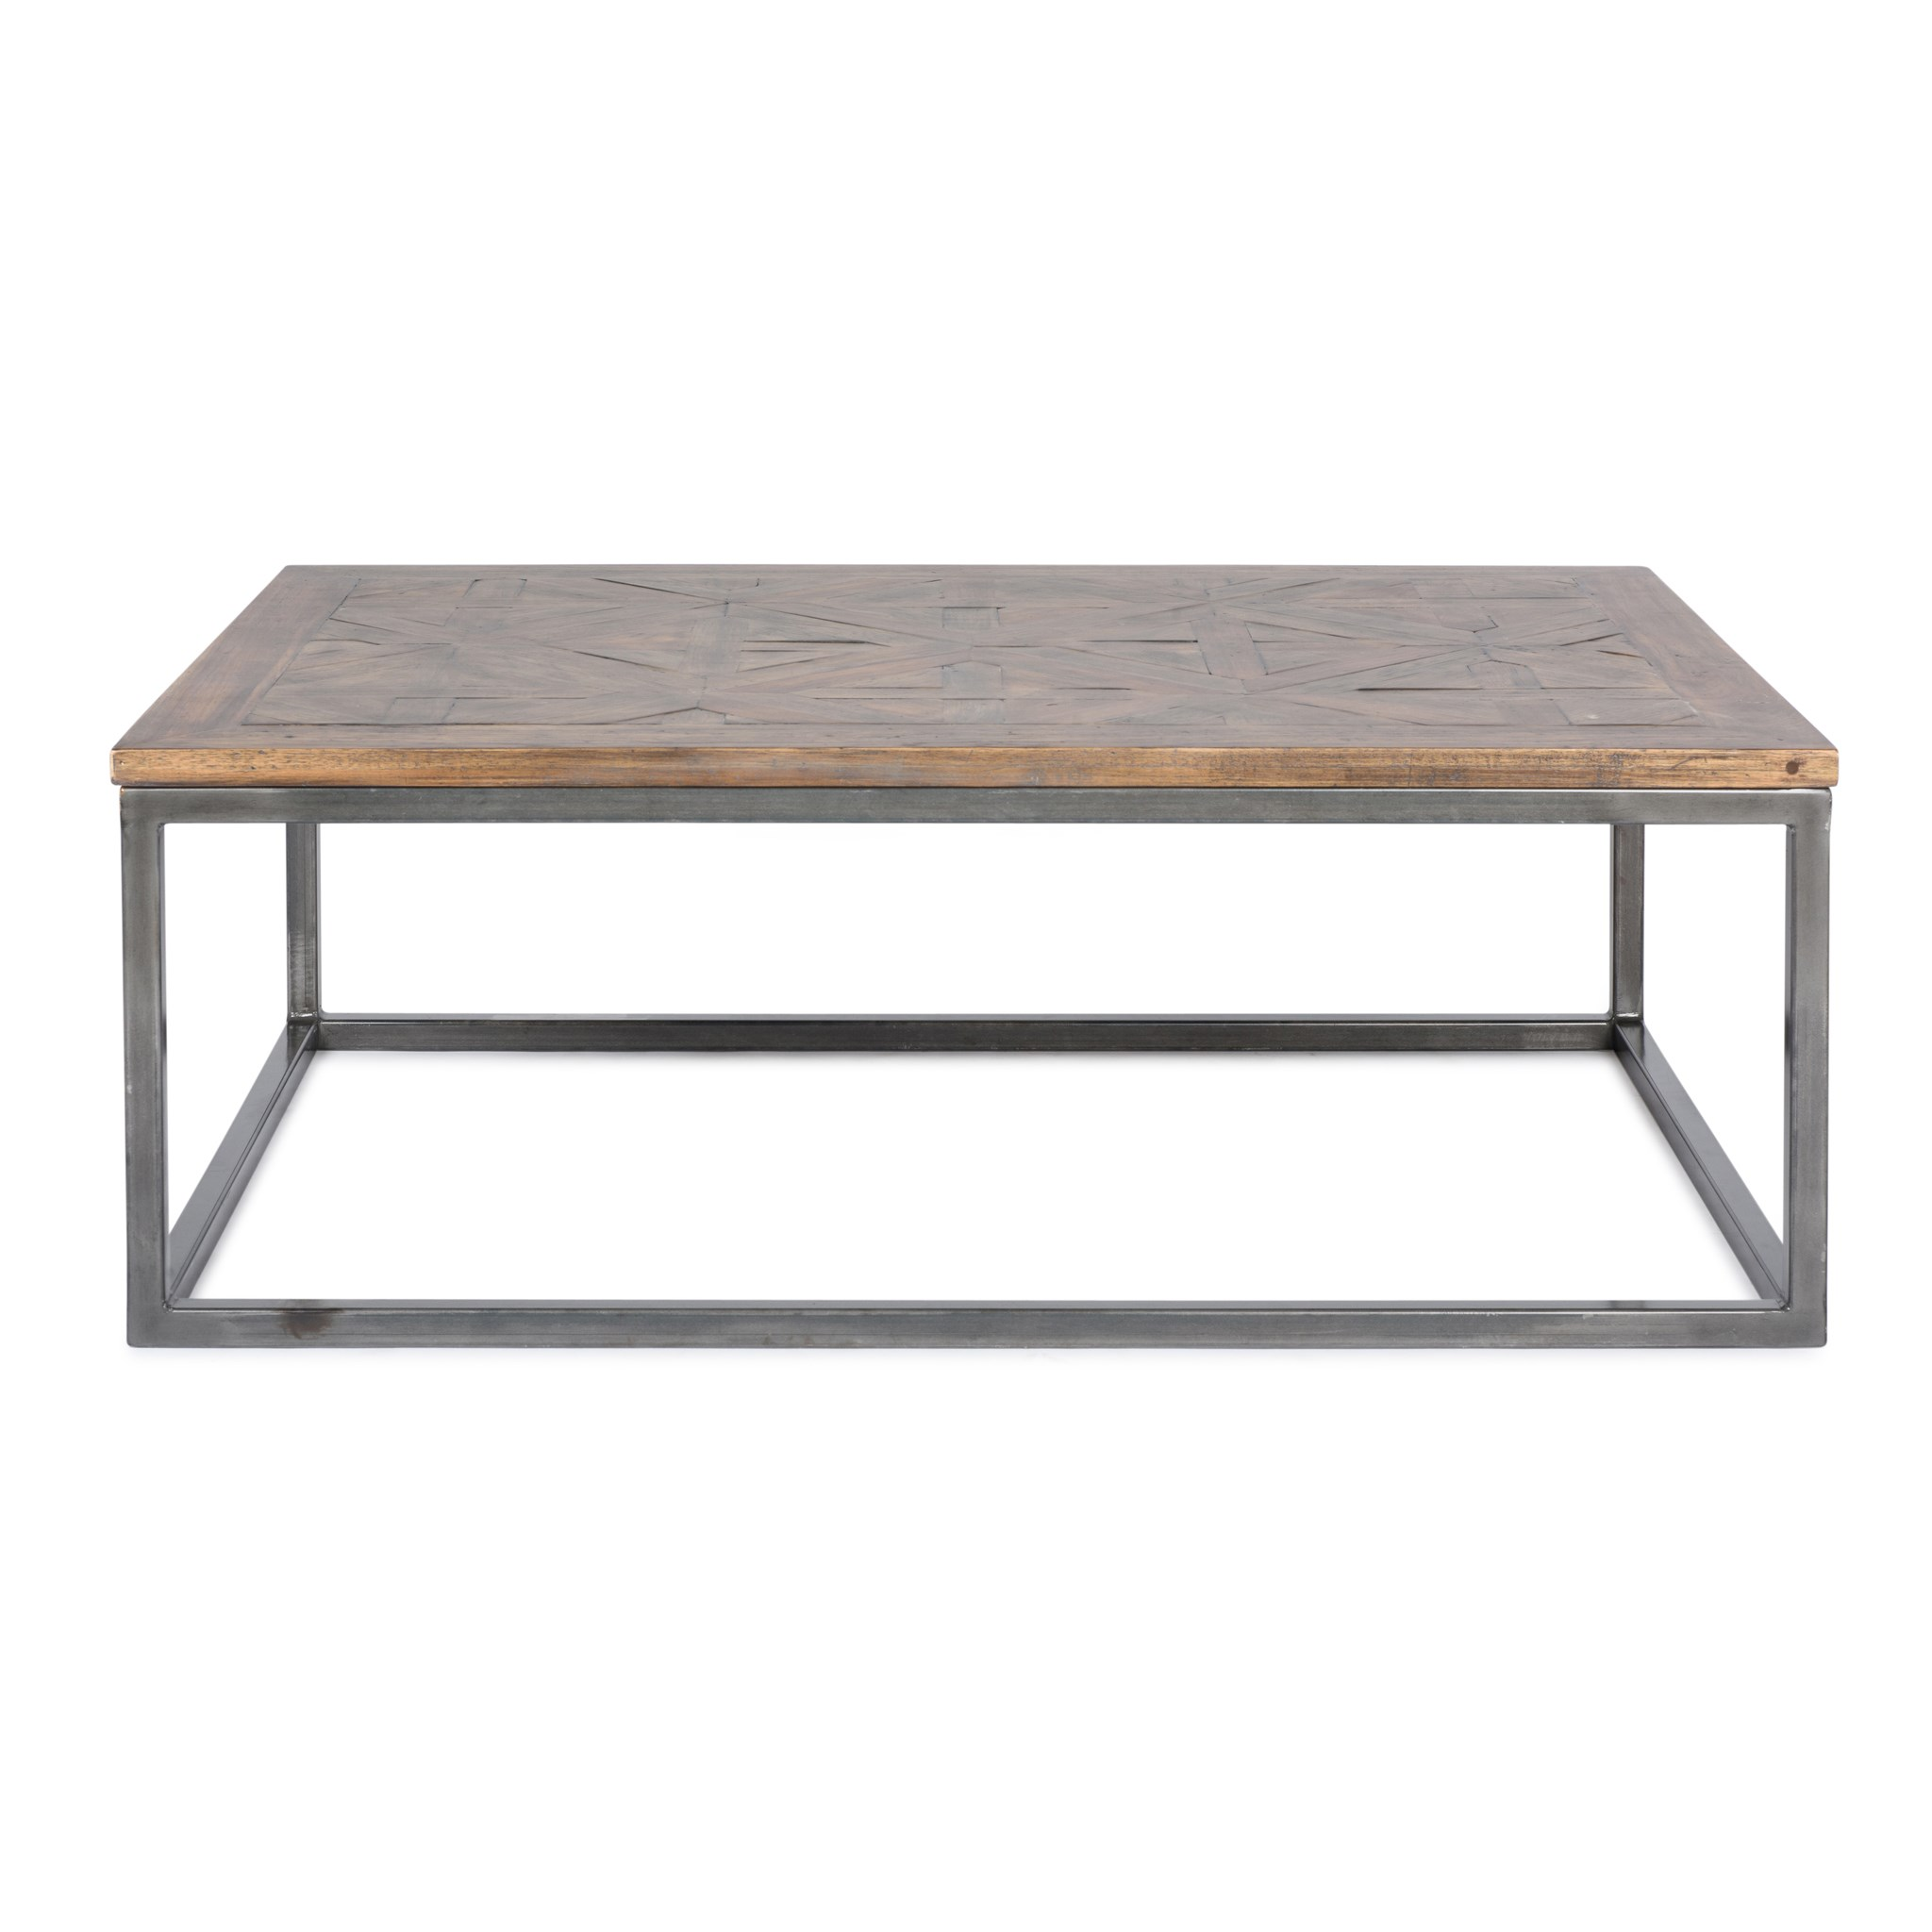 Rochelle Coffee Table Driftwood/Gun Metal